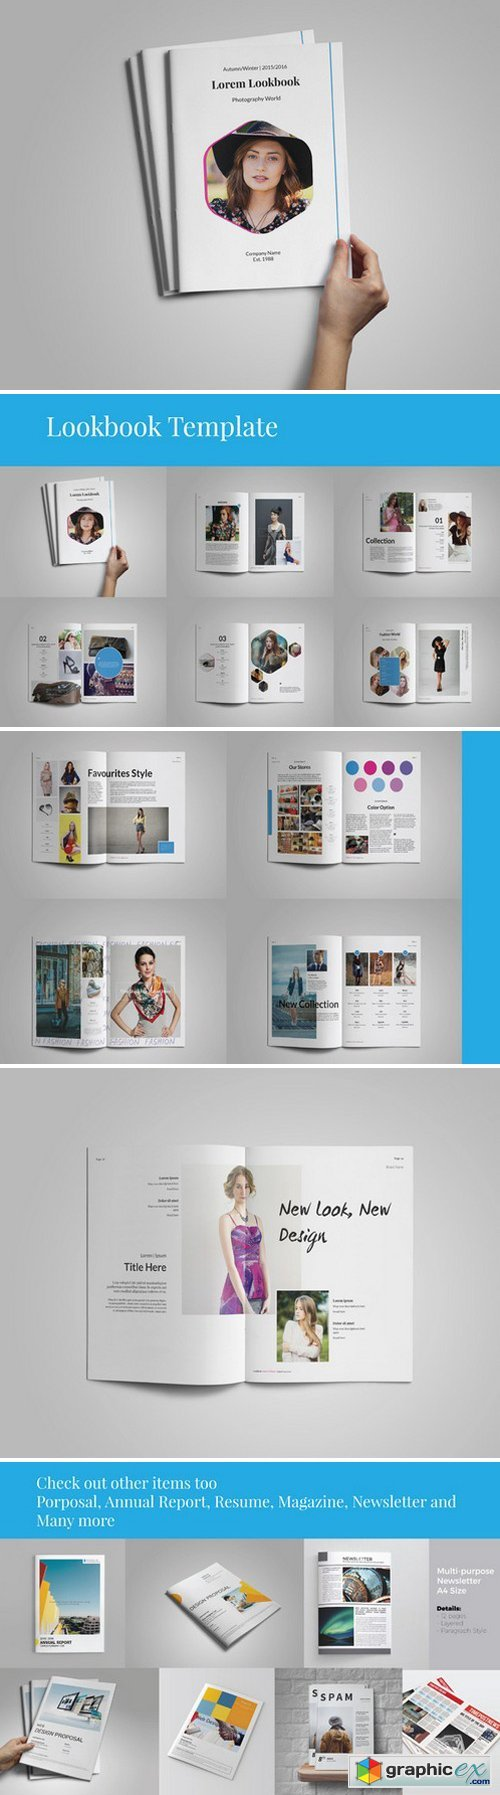 lookbook catalogs template free download vector stock image